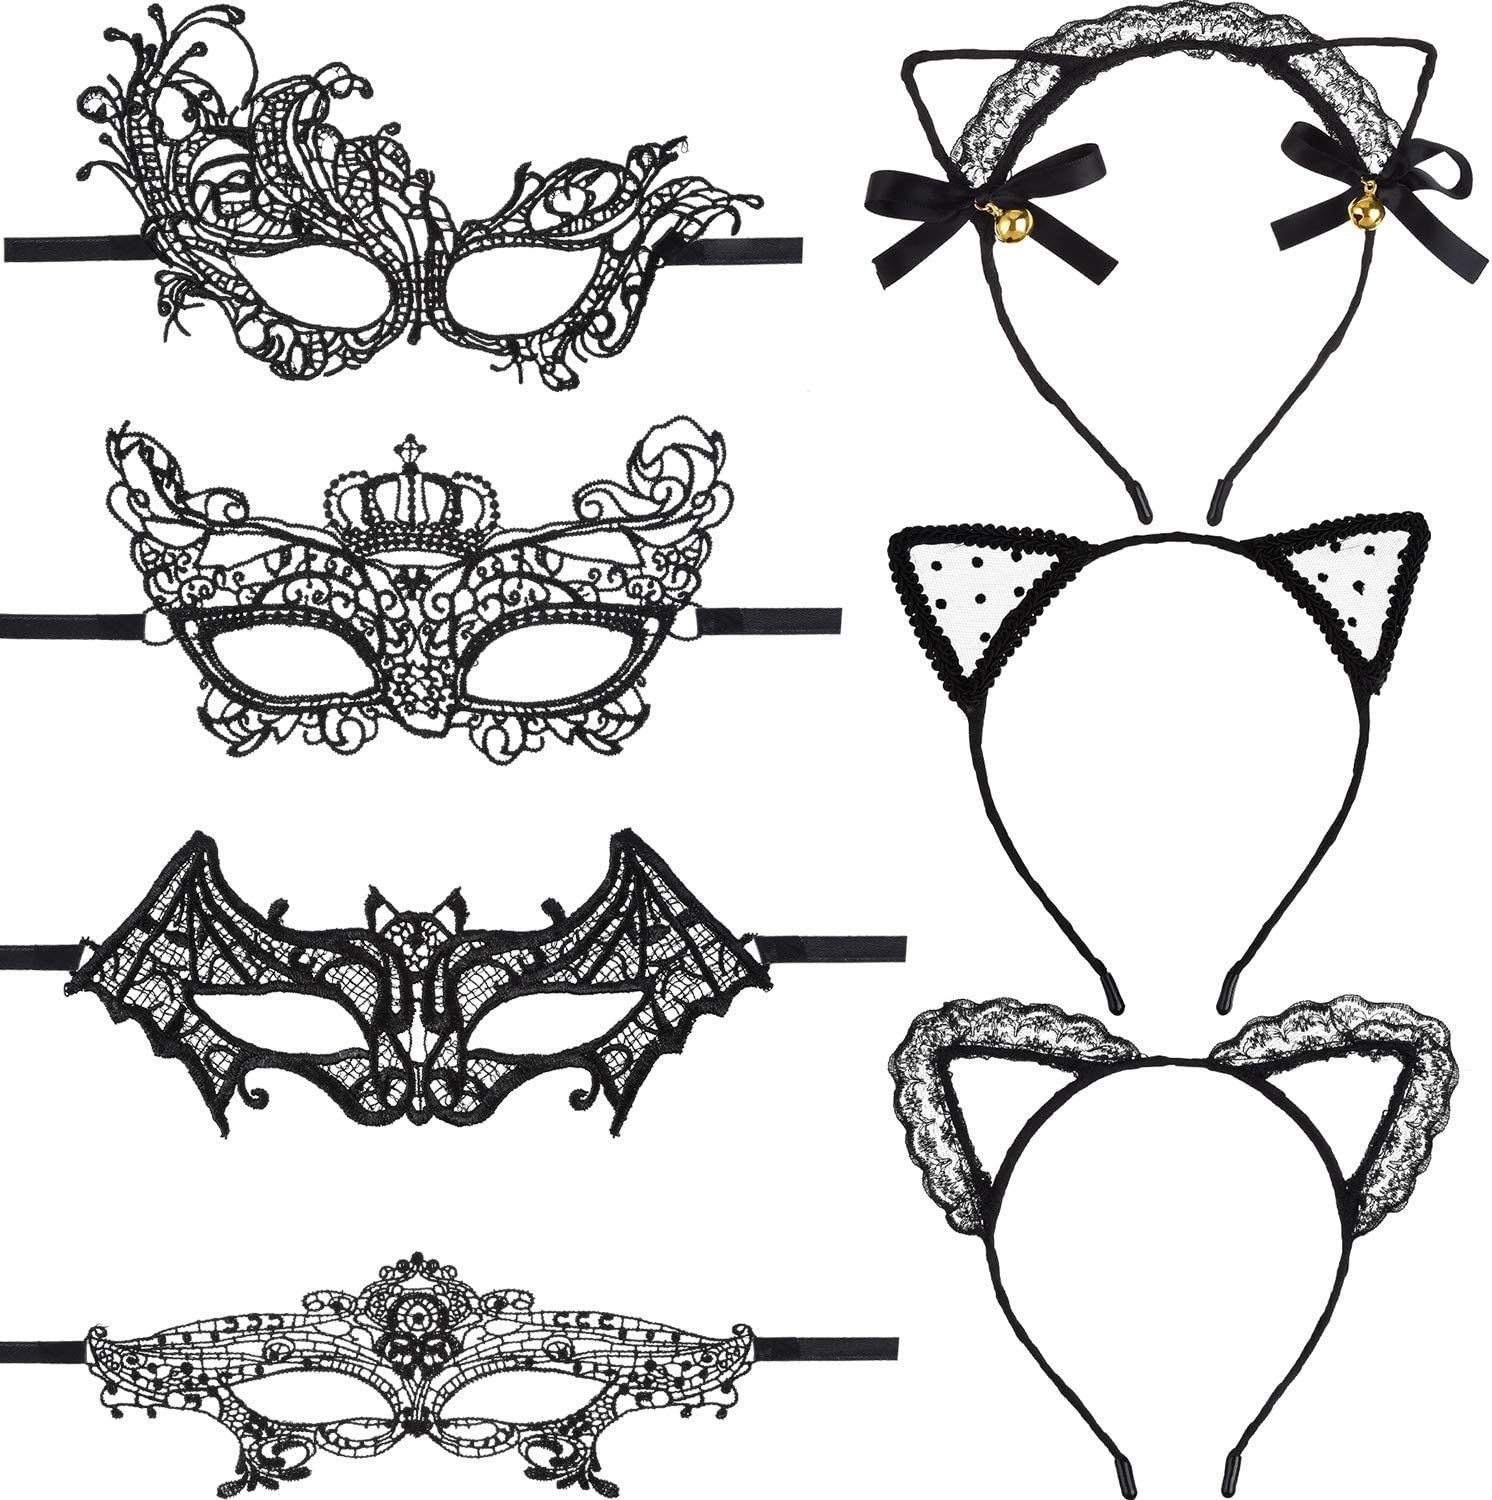 Boao 8 Pieces Masquerade Lace Eye Mask and Cat Ears Headband for Halloween Venetian Carnival Party Costume Ball, Black